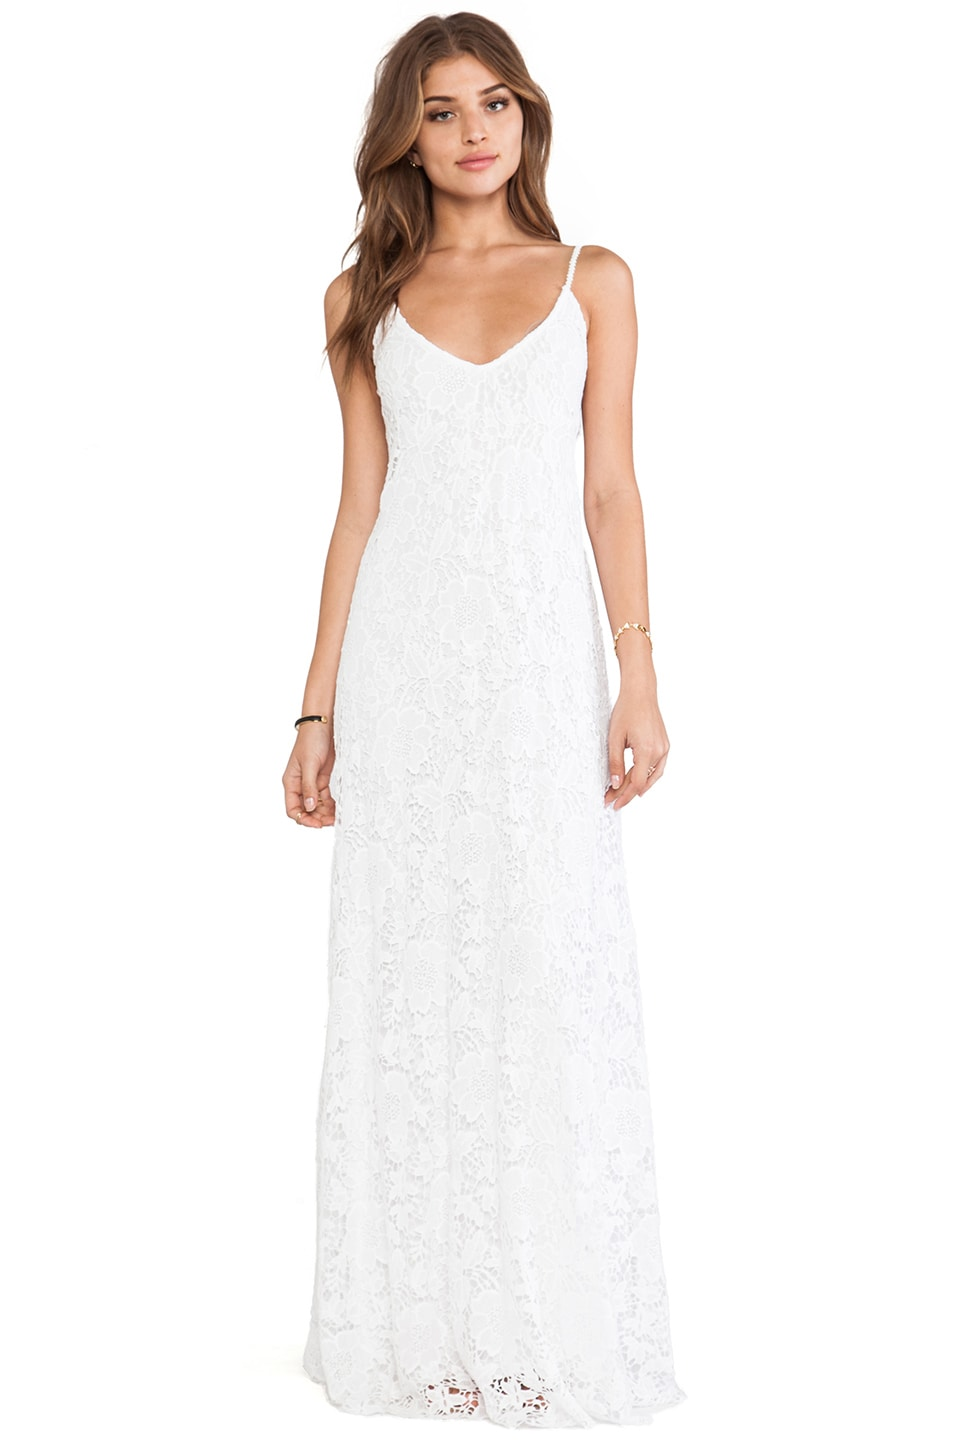 Alexis Kellis Crocheted Maxi Dress in White Crochet